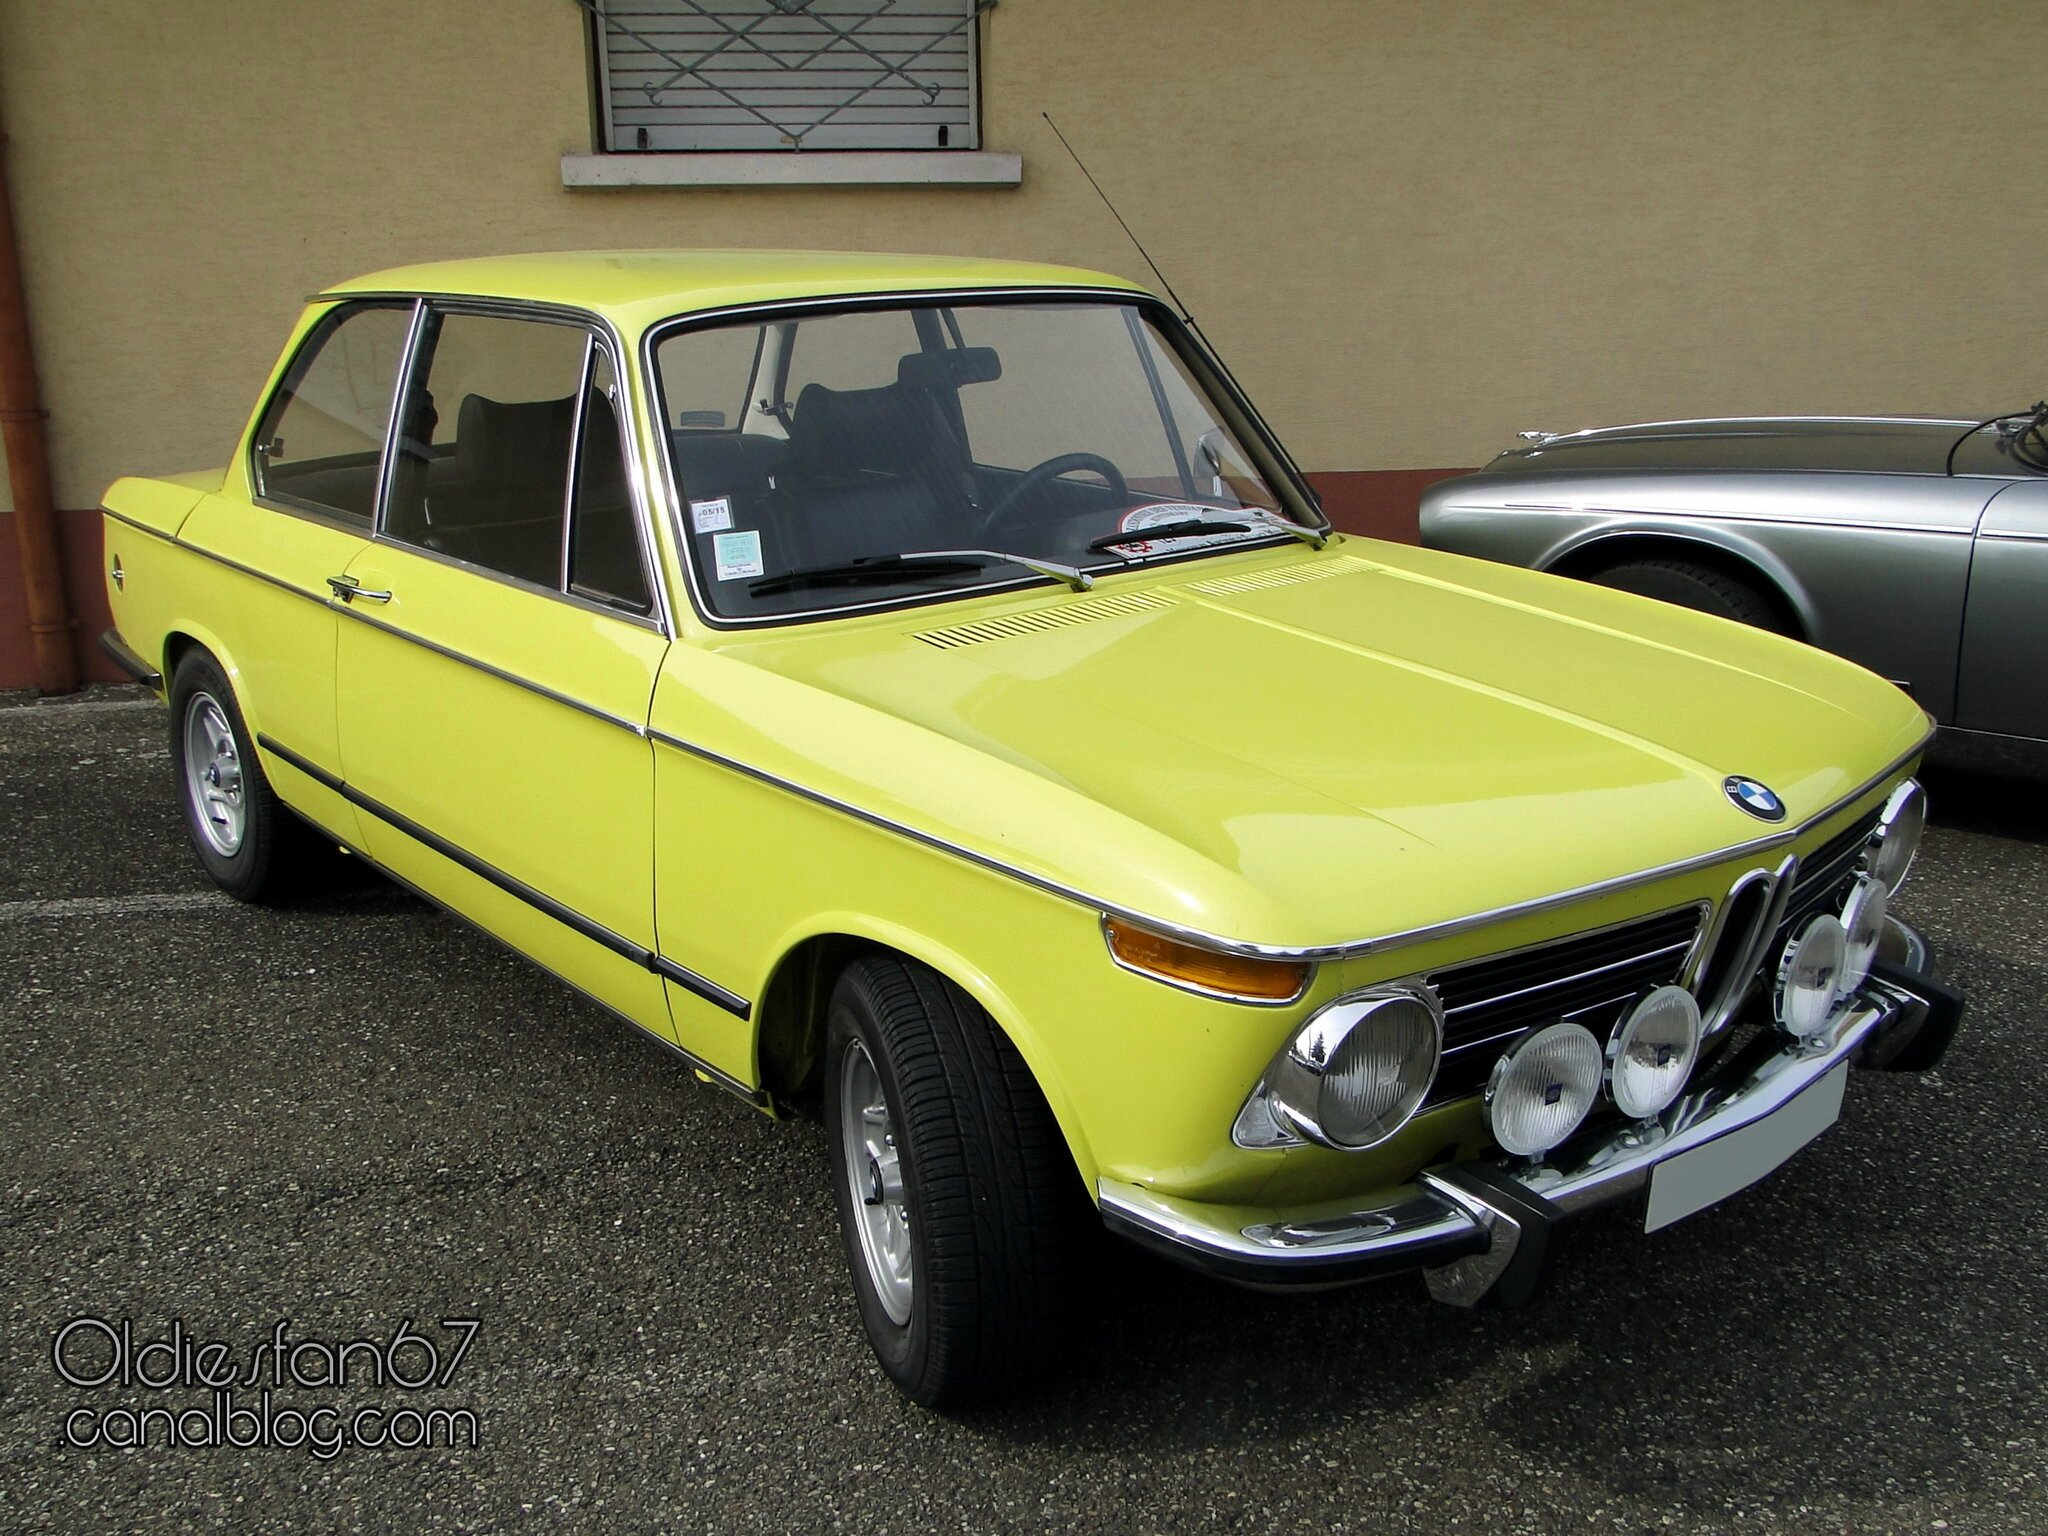 bmw 2002 tii 1971 1973 oldiesfan67 mon blog auto. Black Bedroom Furniture Sets. Home Design Ideas